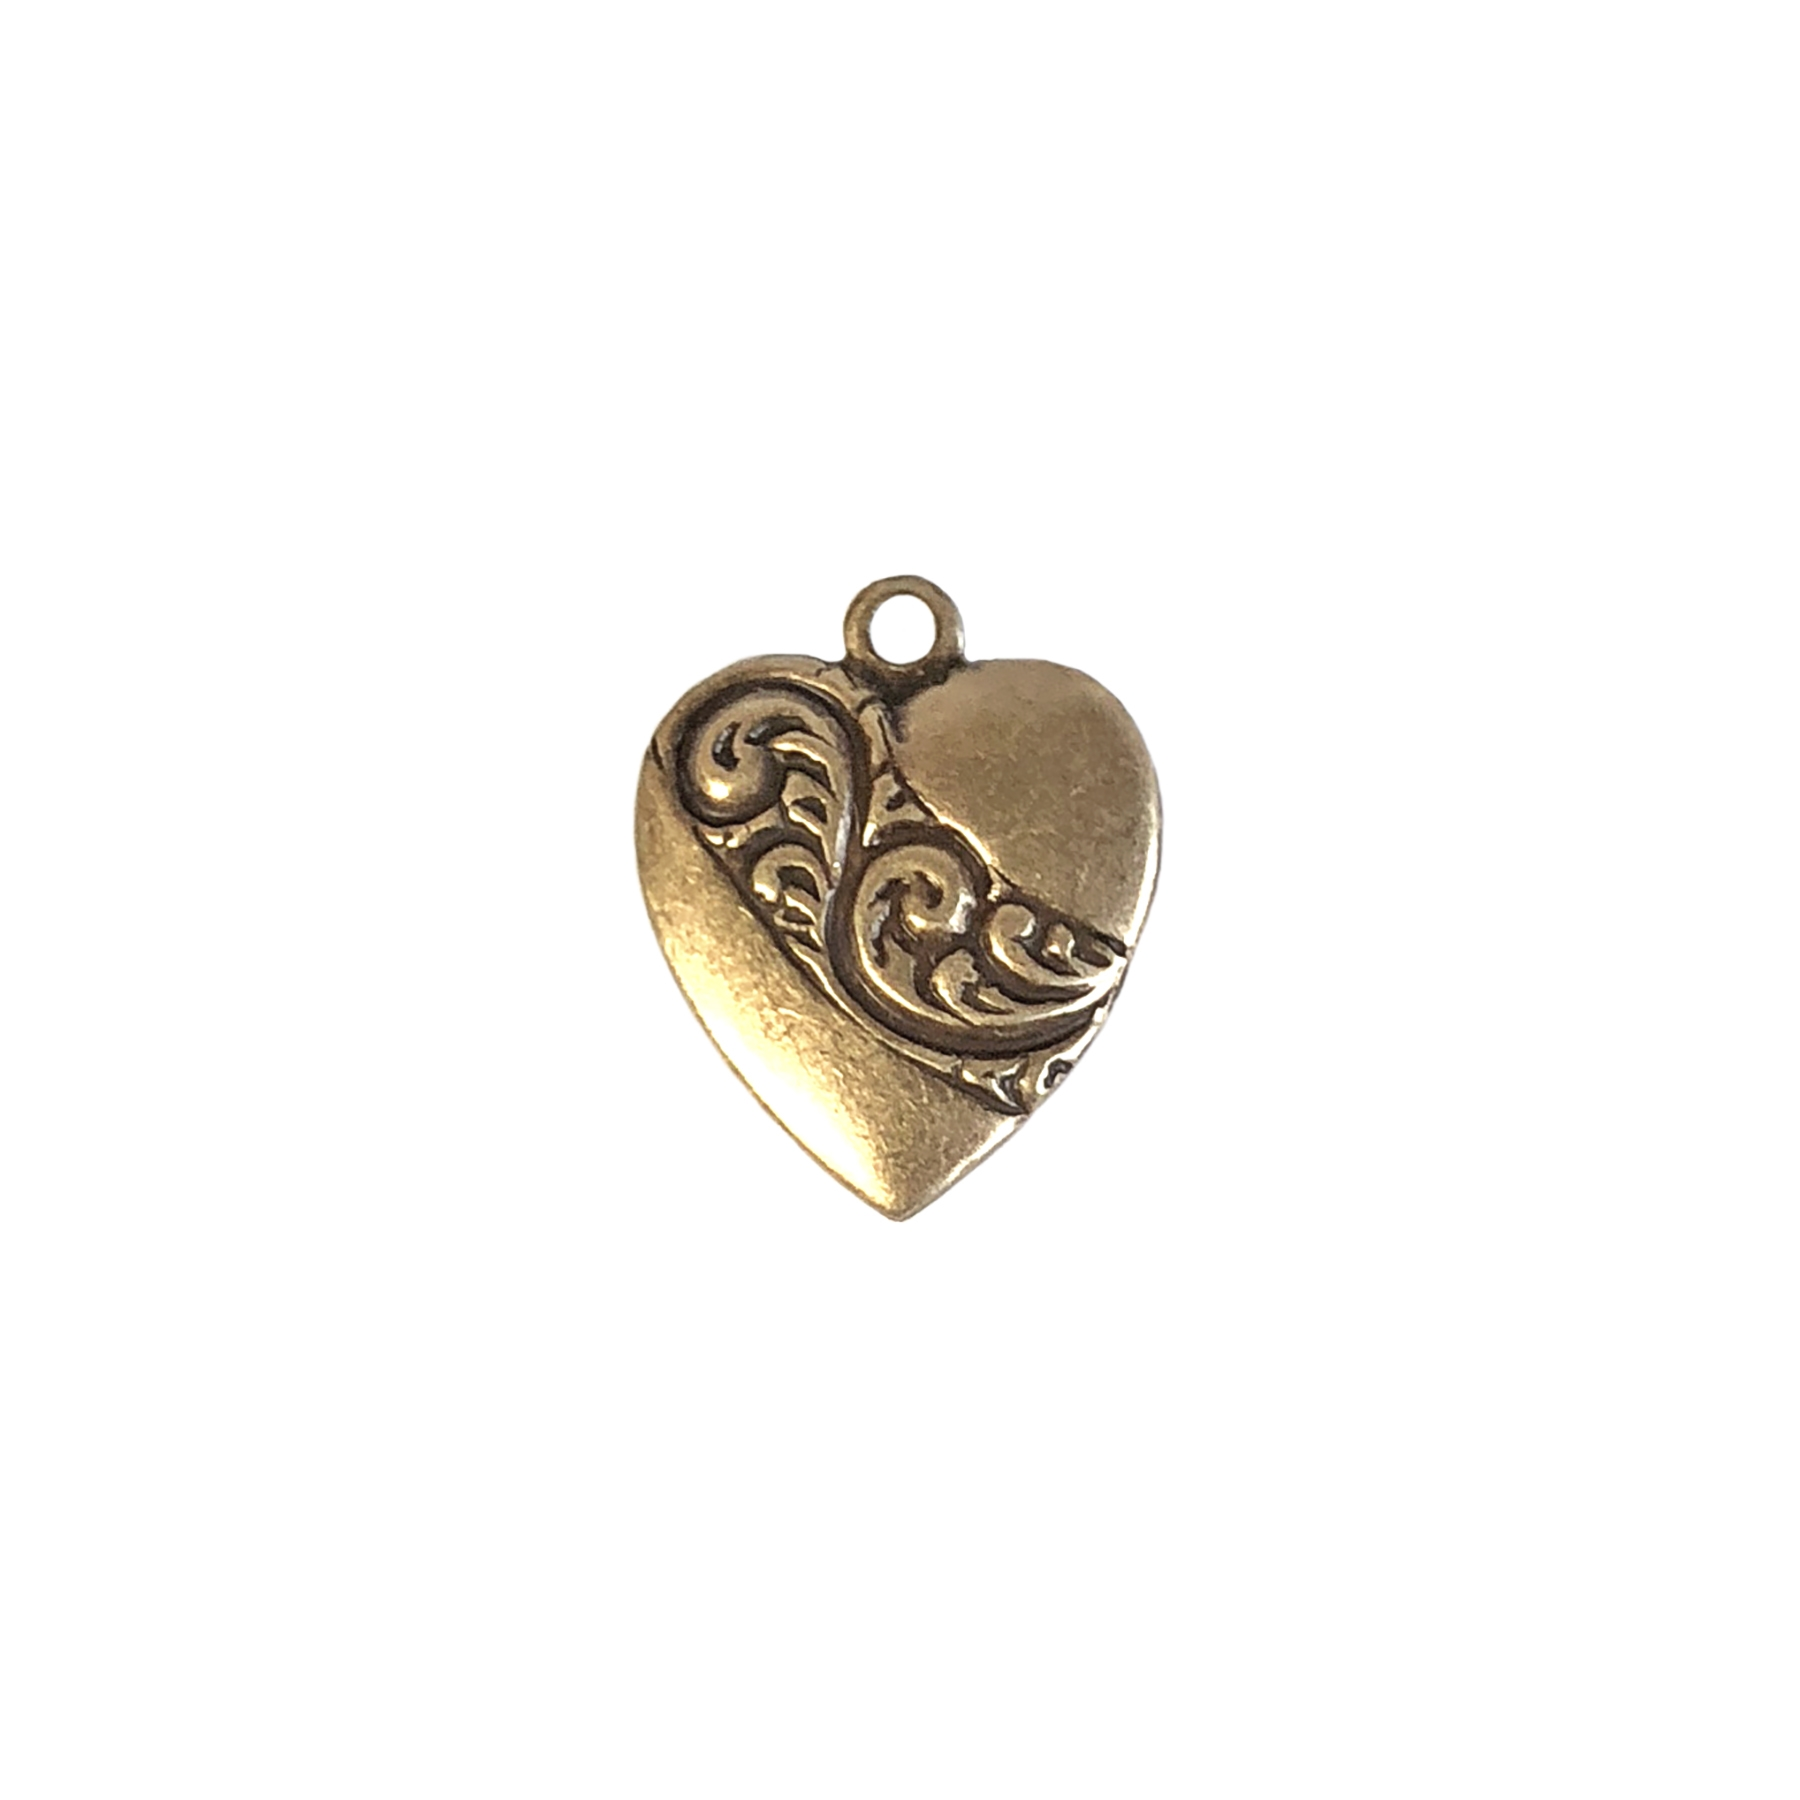 heart leaf swirl banner charm, brass ox, leaf swirl banner, antique brass, charm, heart, heart charm, US made, nickel free, 16x15mm, leaf swirl heart, heart banner, brass charm, brass stamping, jewelry making, jewelry supplies, vintage supplies, 09411